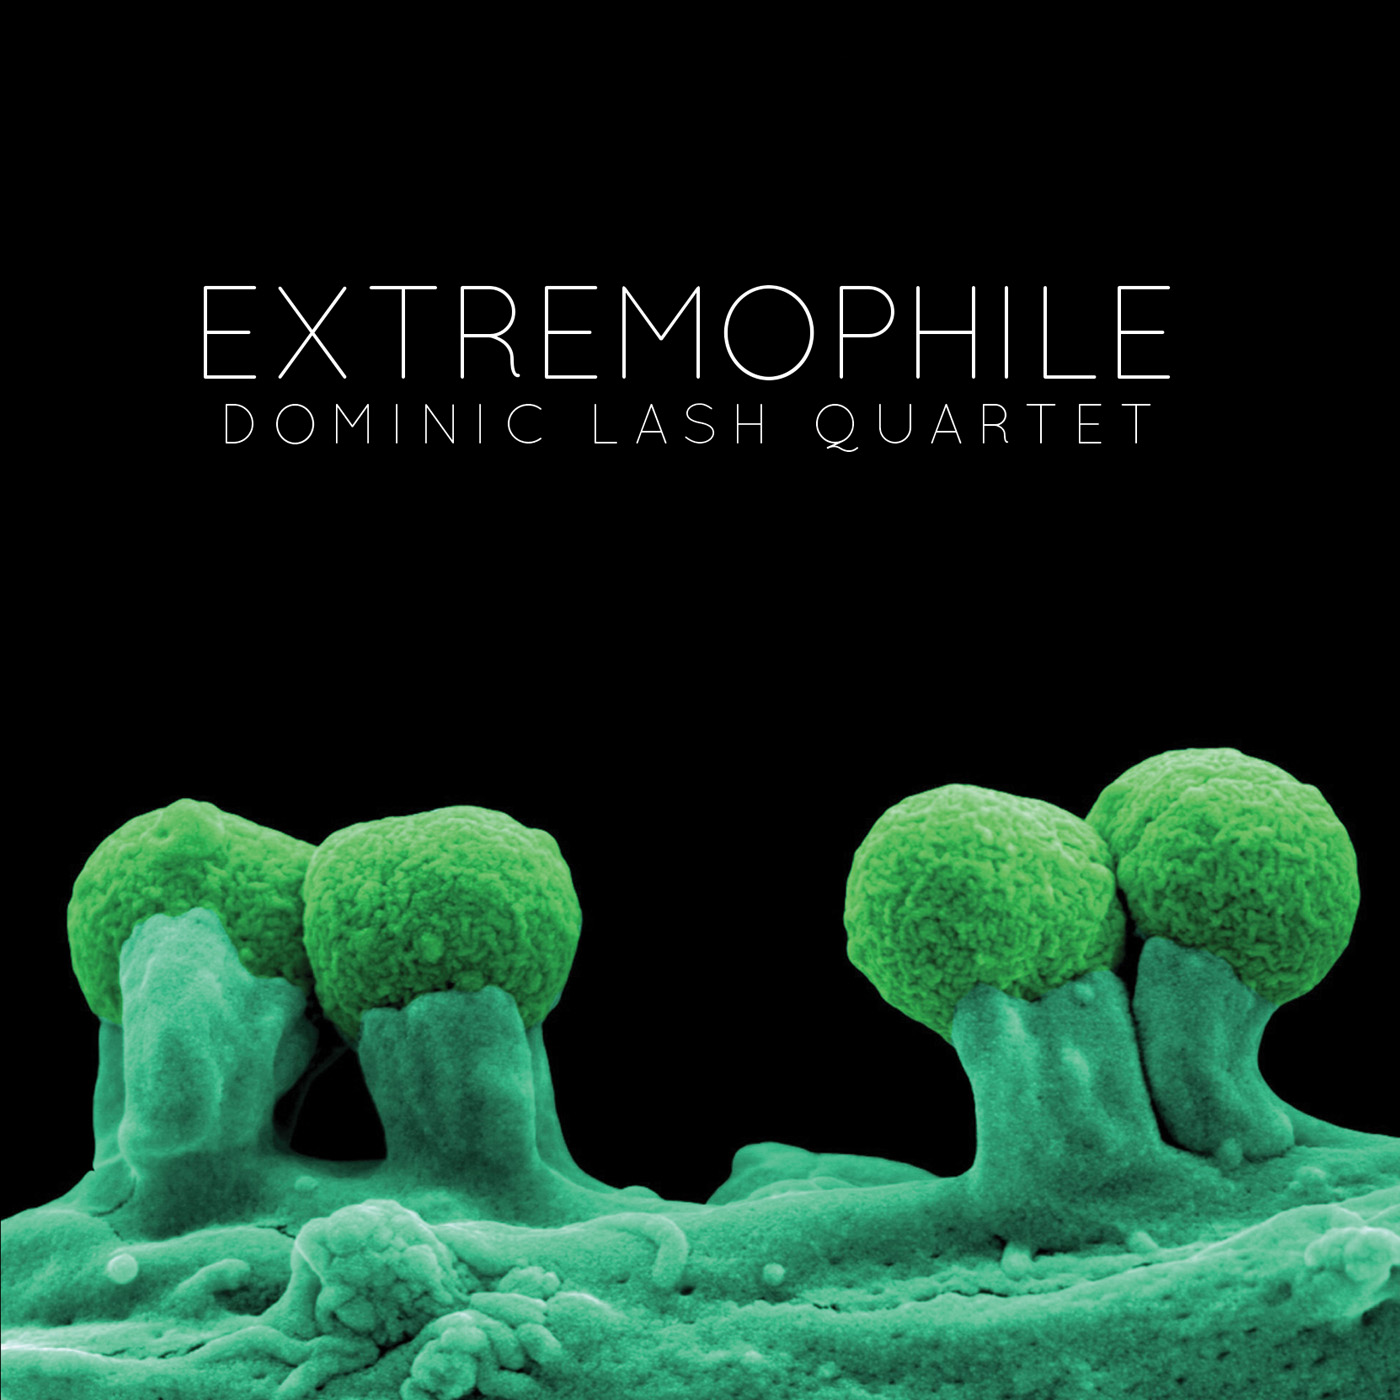 Extremophile by Dominic Lash Quartet